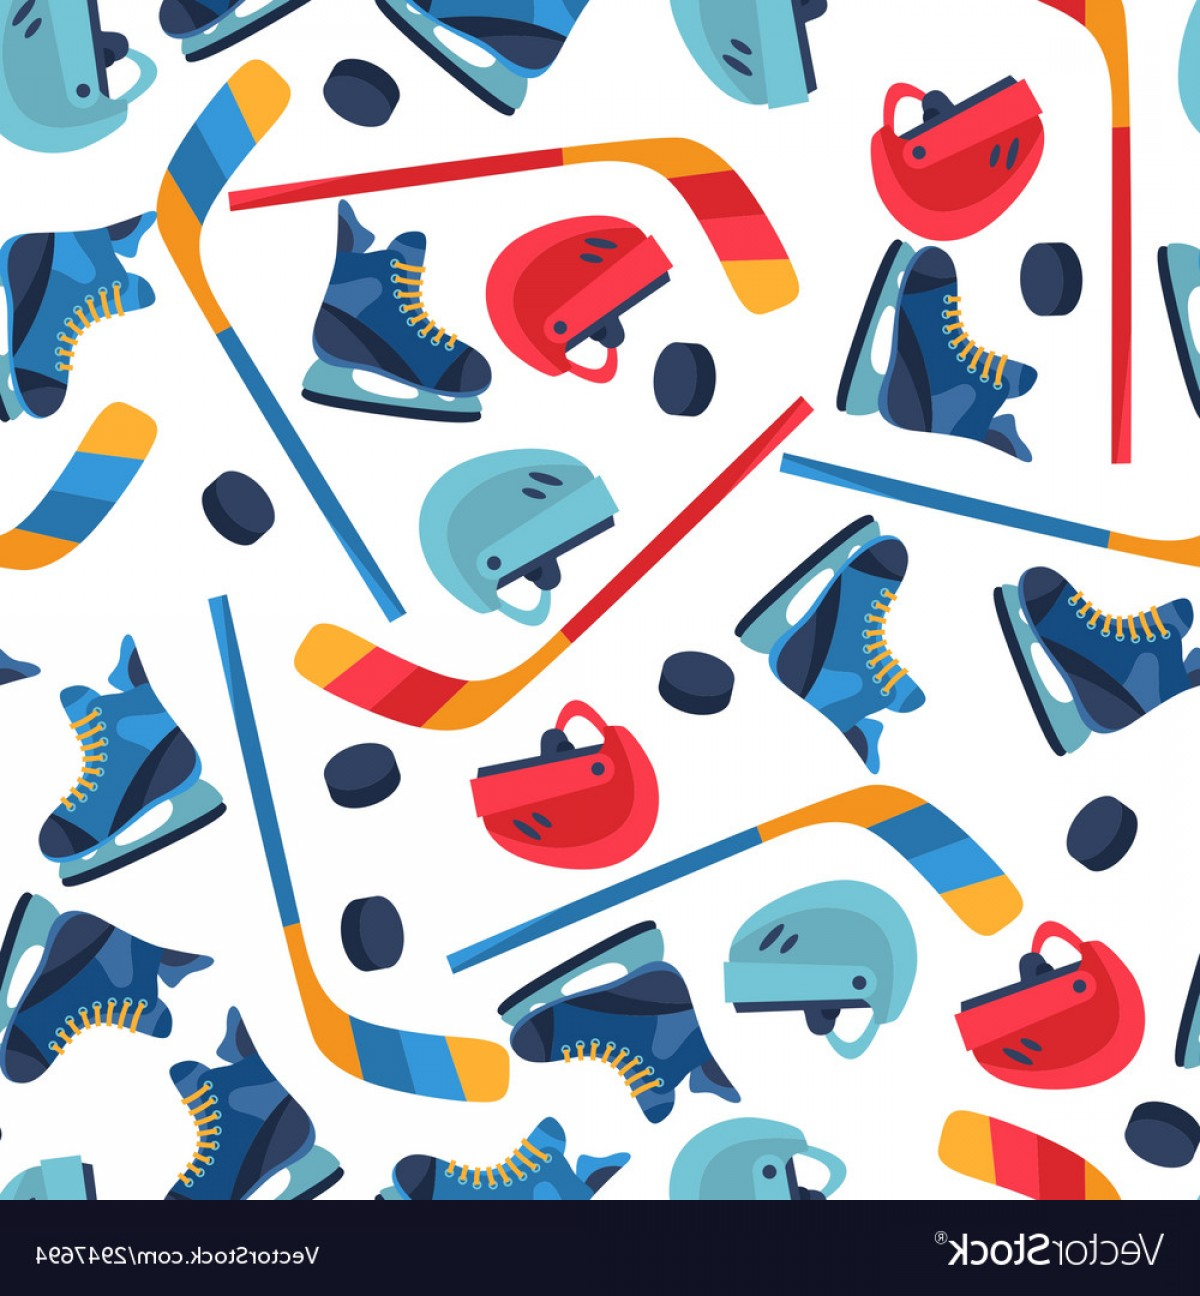 Hockey Vector Patterns: Sports Seamless Pattern With Hockey Equipment Flat Vector